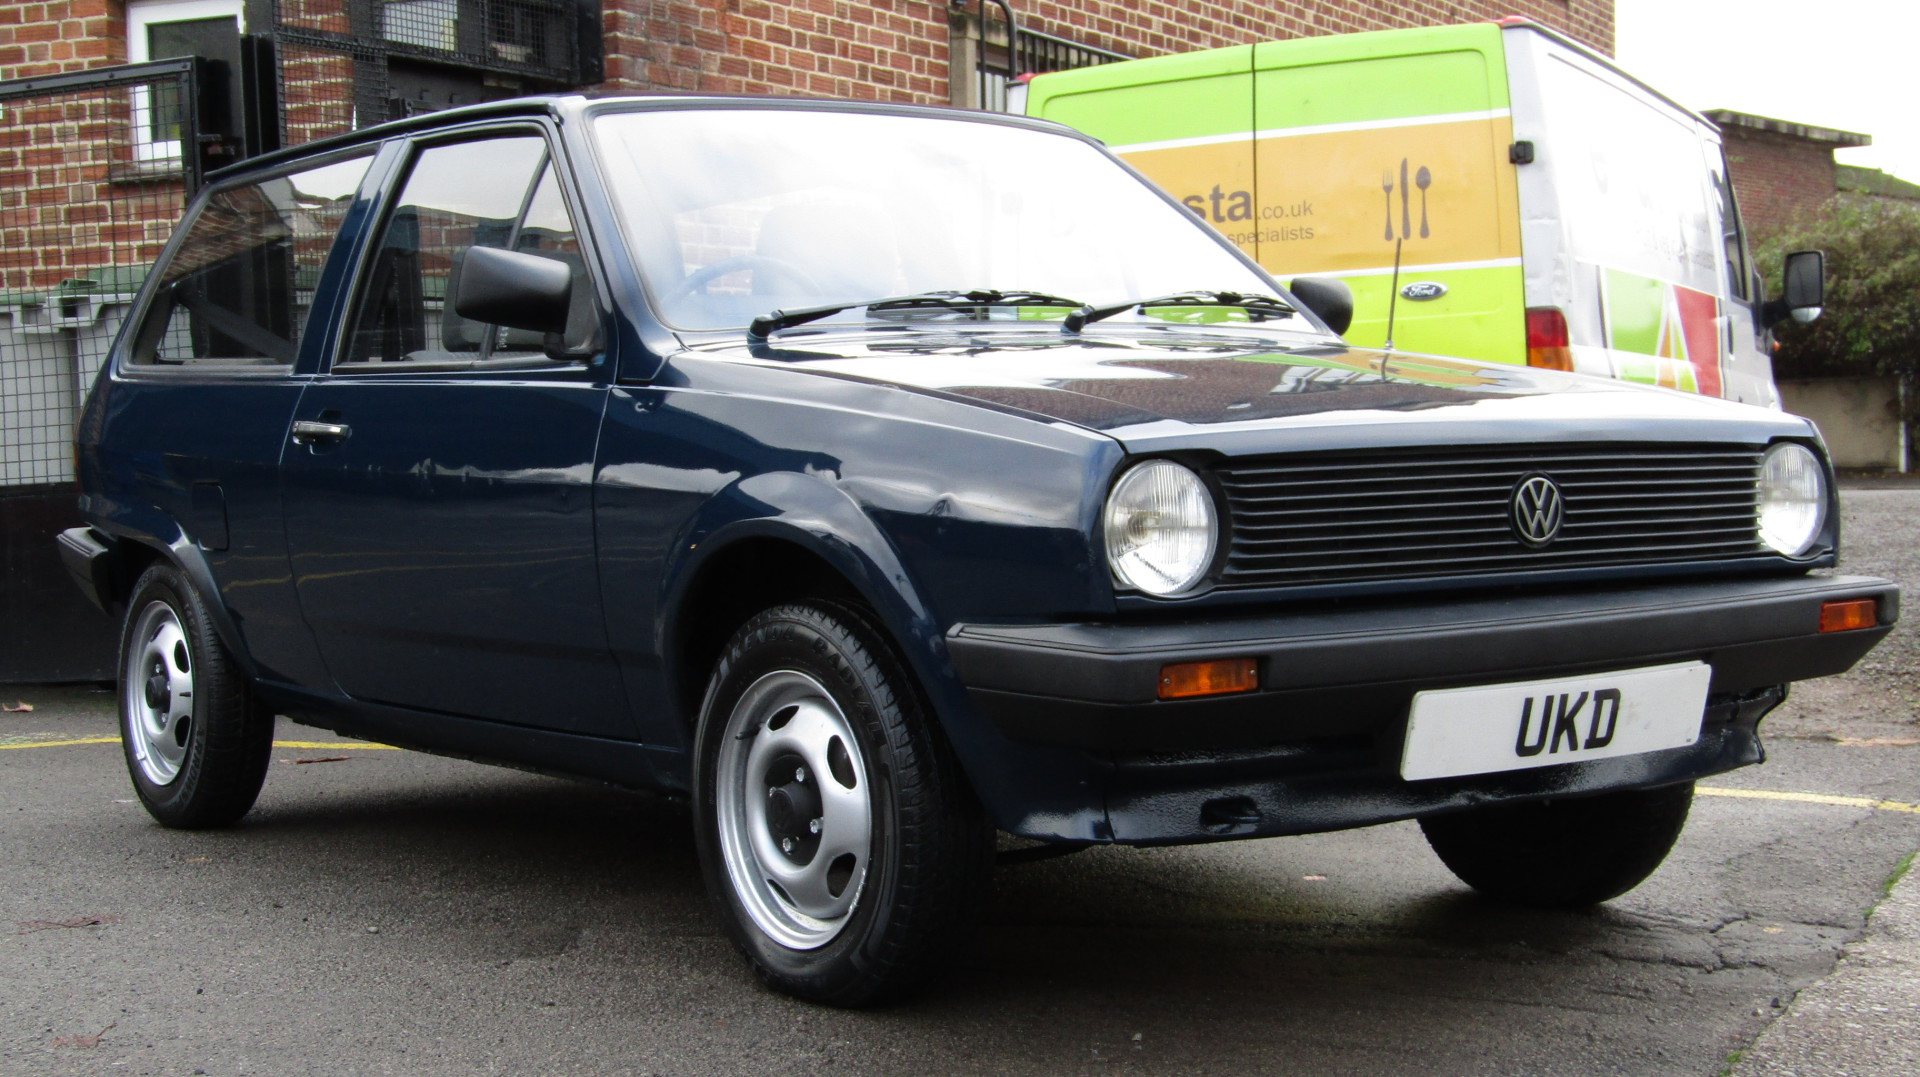 VW POLO MK2 BREADVAN 1.0 3DR BLUE 1985